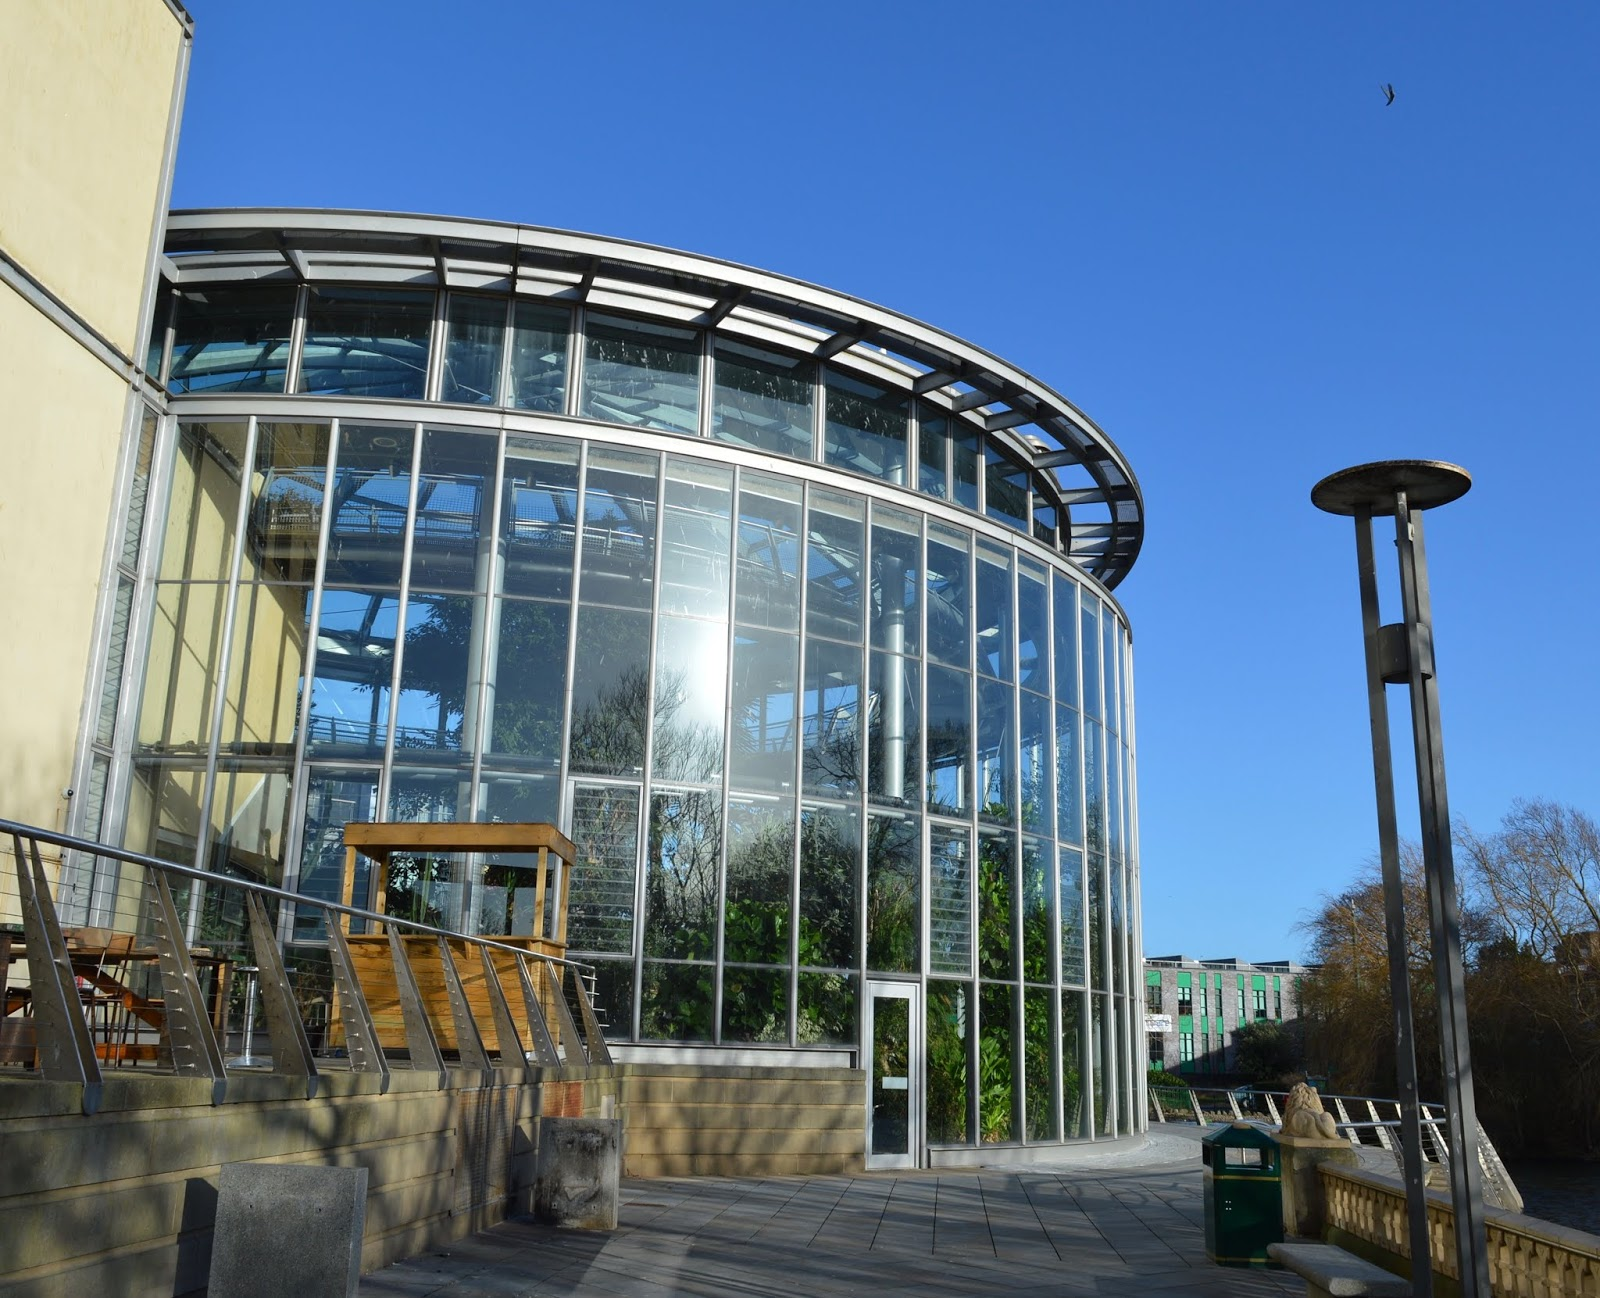 5 Reasons to Visit the Leonardo da Vinci: A Life in Drawing Exhibition at Sunderland Museum & Winter Gardens with Kids - winter gardens exterior